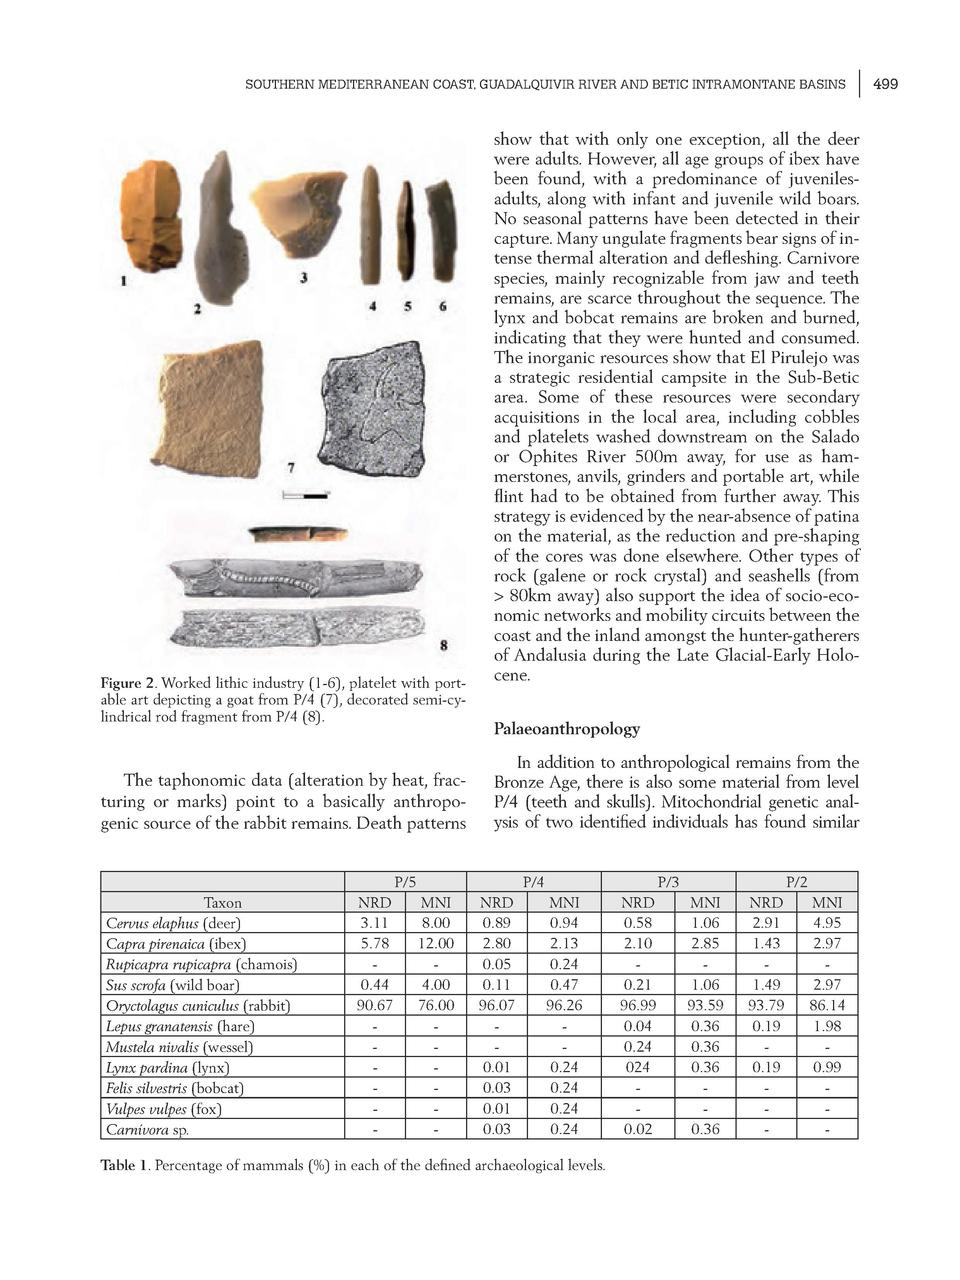 SOUTHERN MEDITERRANEAN COAST, GUADALQUIVIR RIVER AND BETIC INTRAMONTANE BASINS  Figure 2. Worked lithic industry  1-6 , pl...